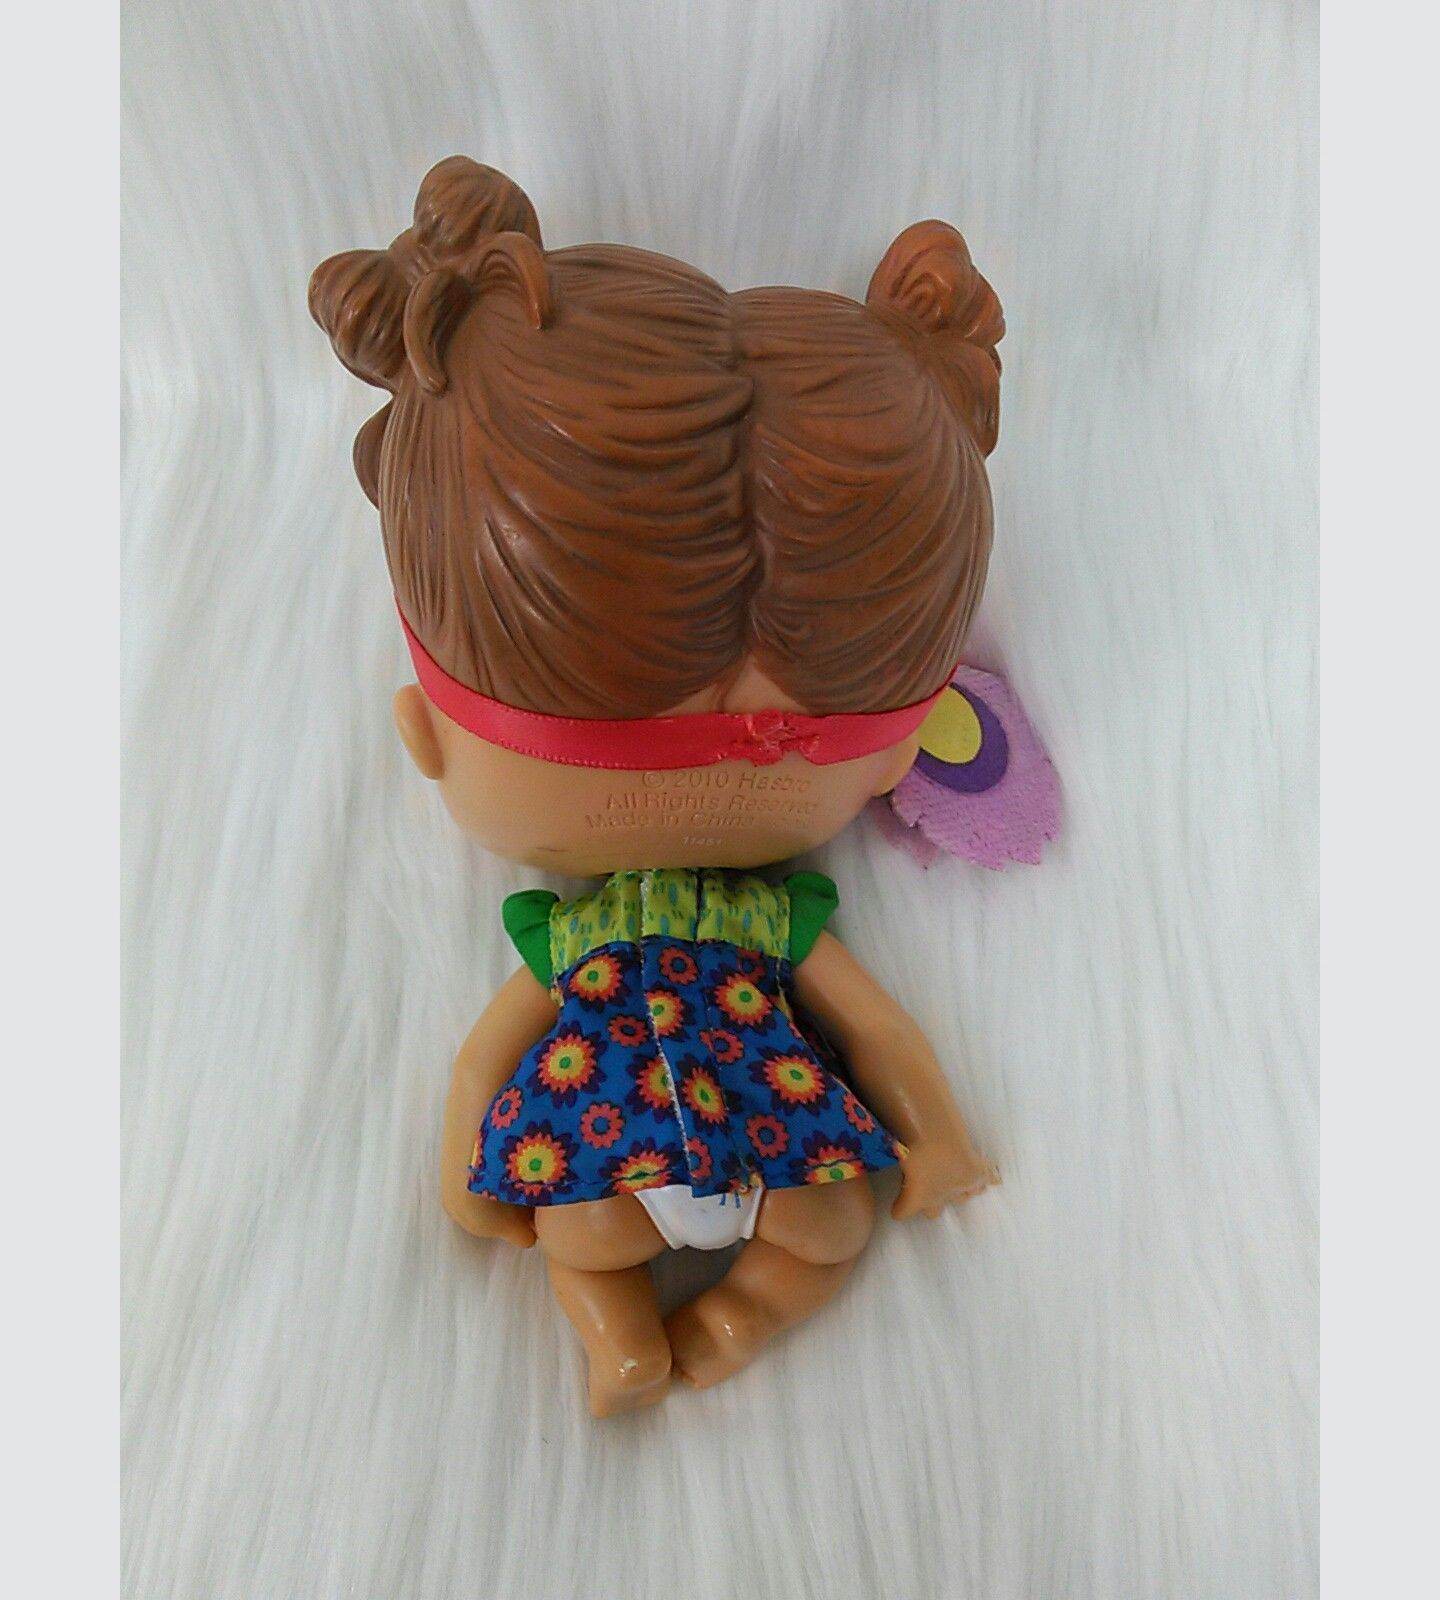 "6"" Baby Alive Crib Life Makayla Song Doll Retired 2010 Brown Hair Blue Eyes B211 image 2"